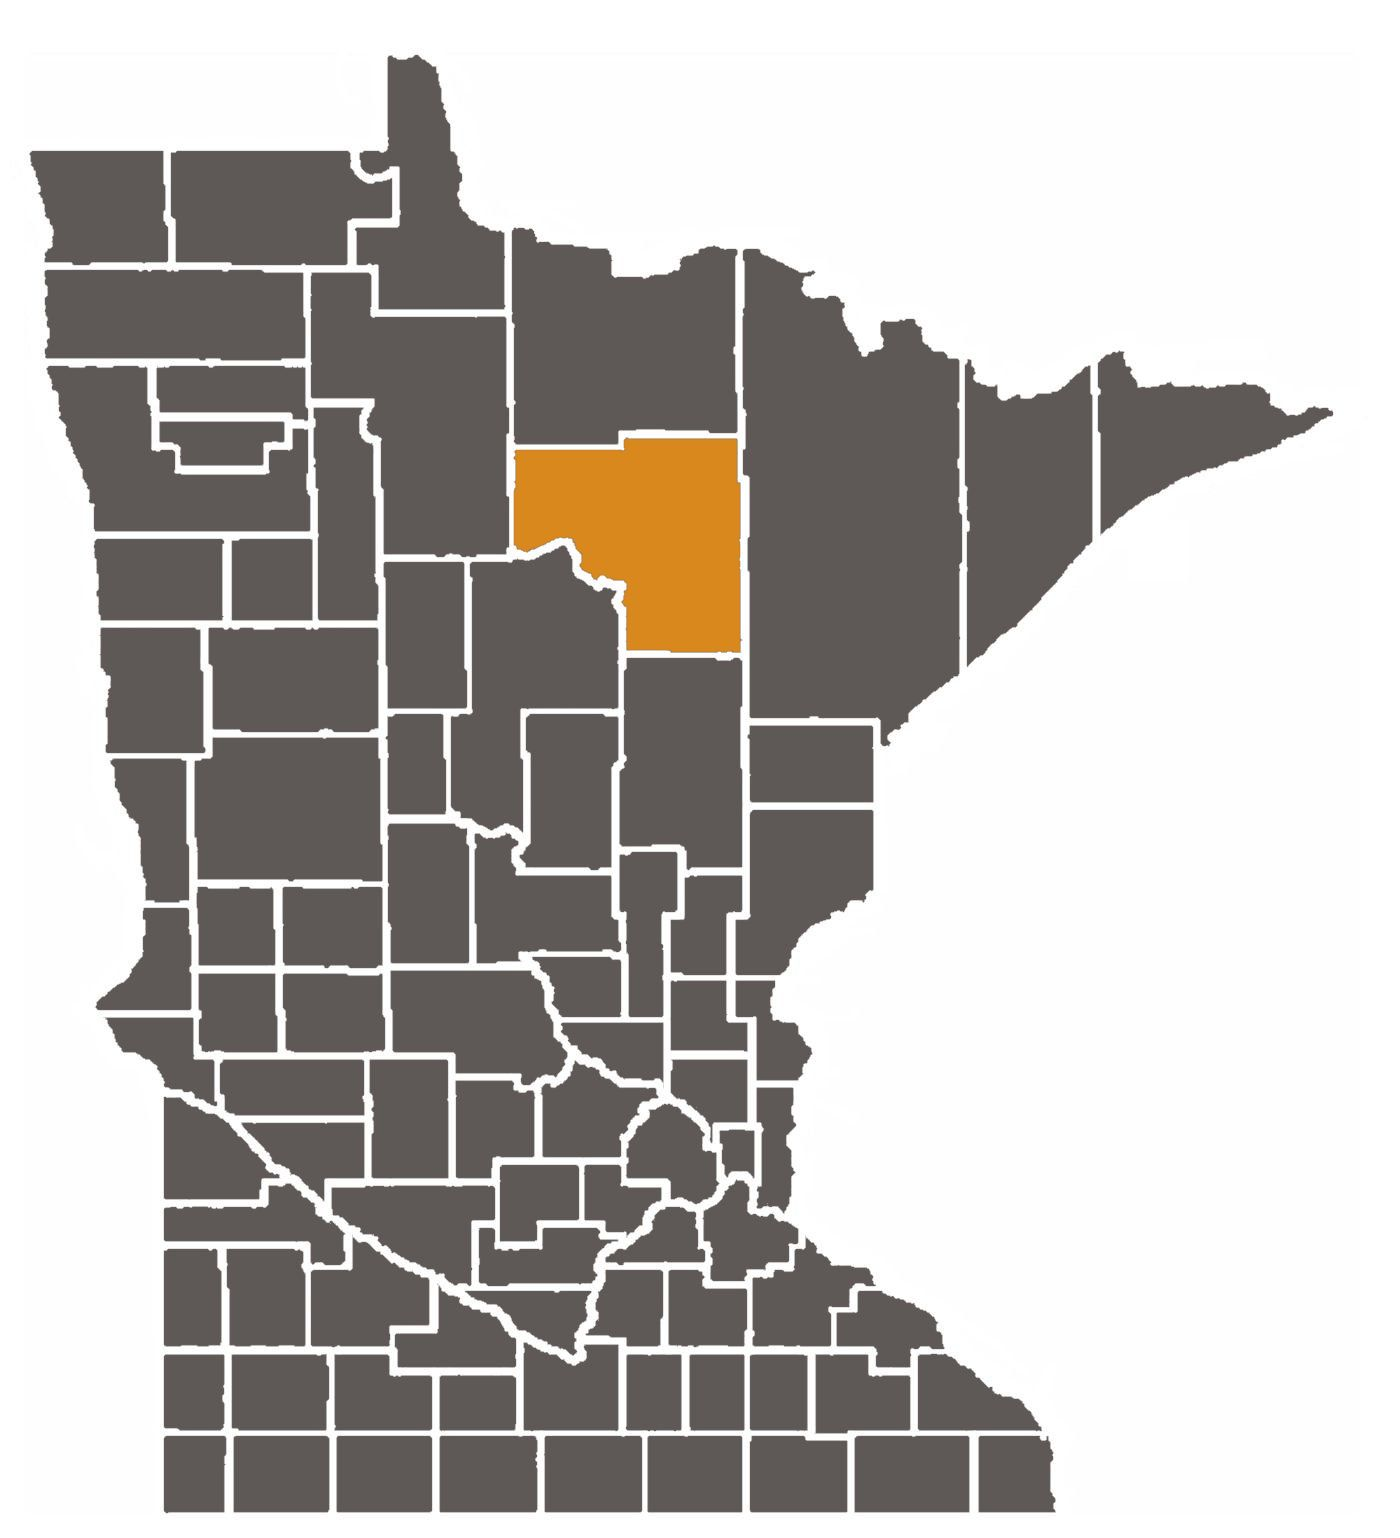 Minnesota map with Itasca County highlighted.